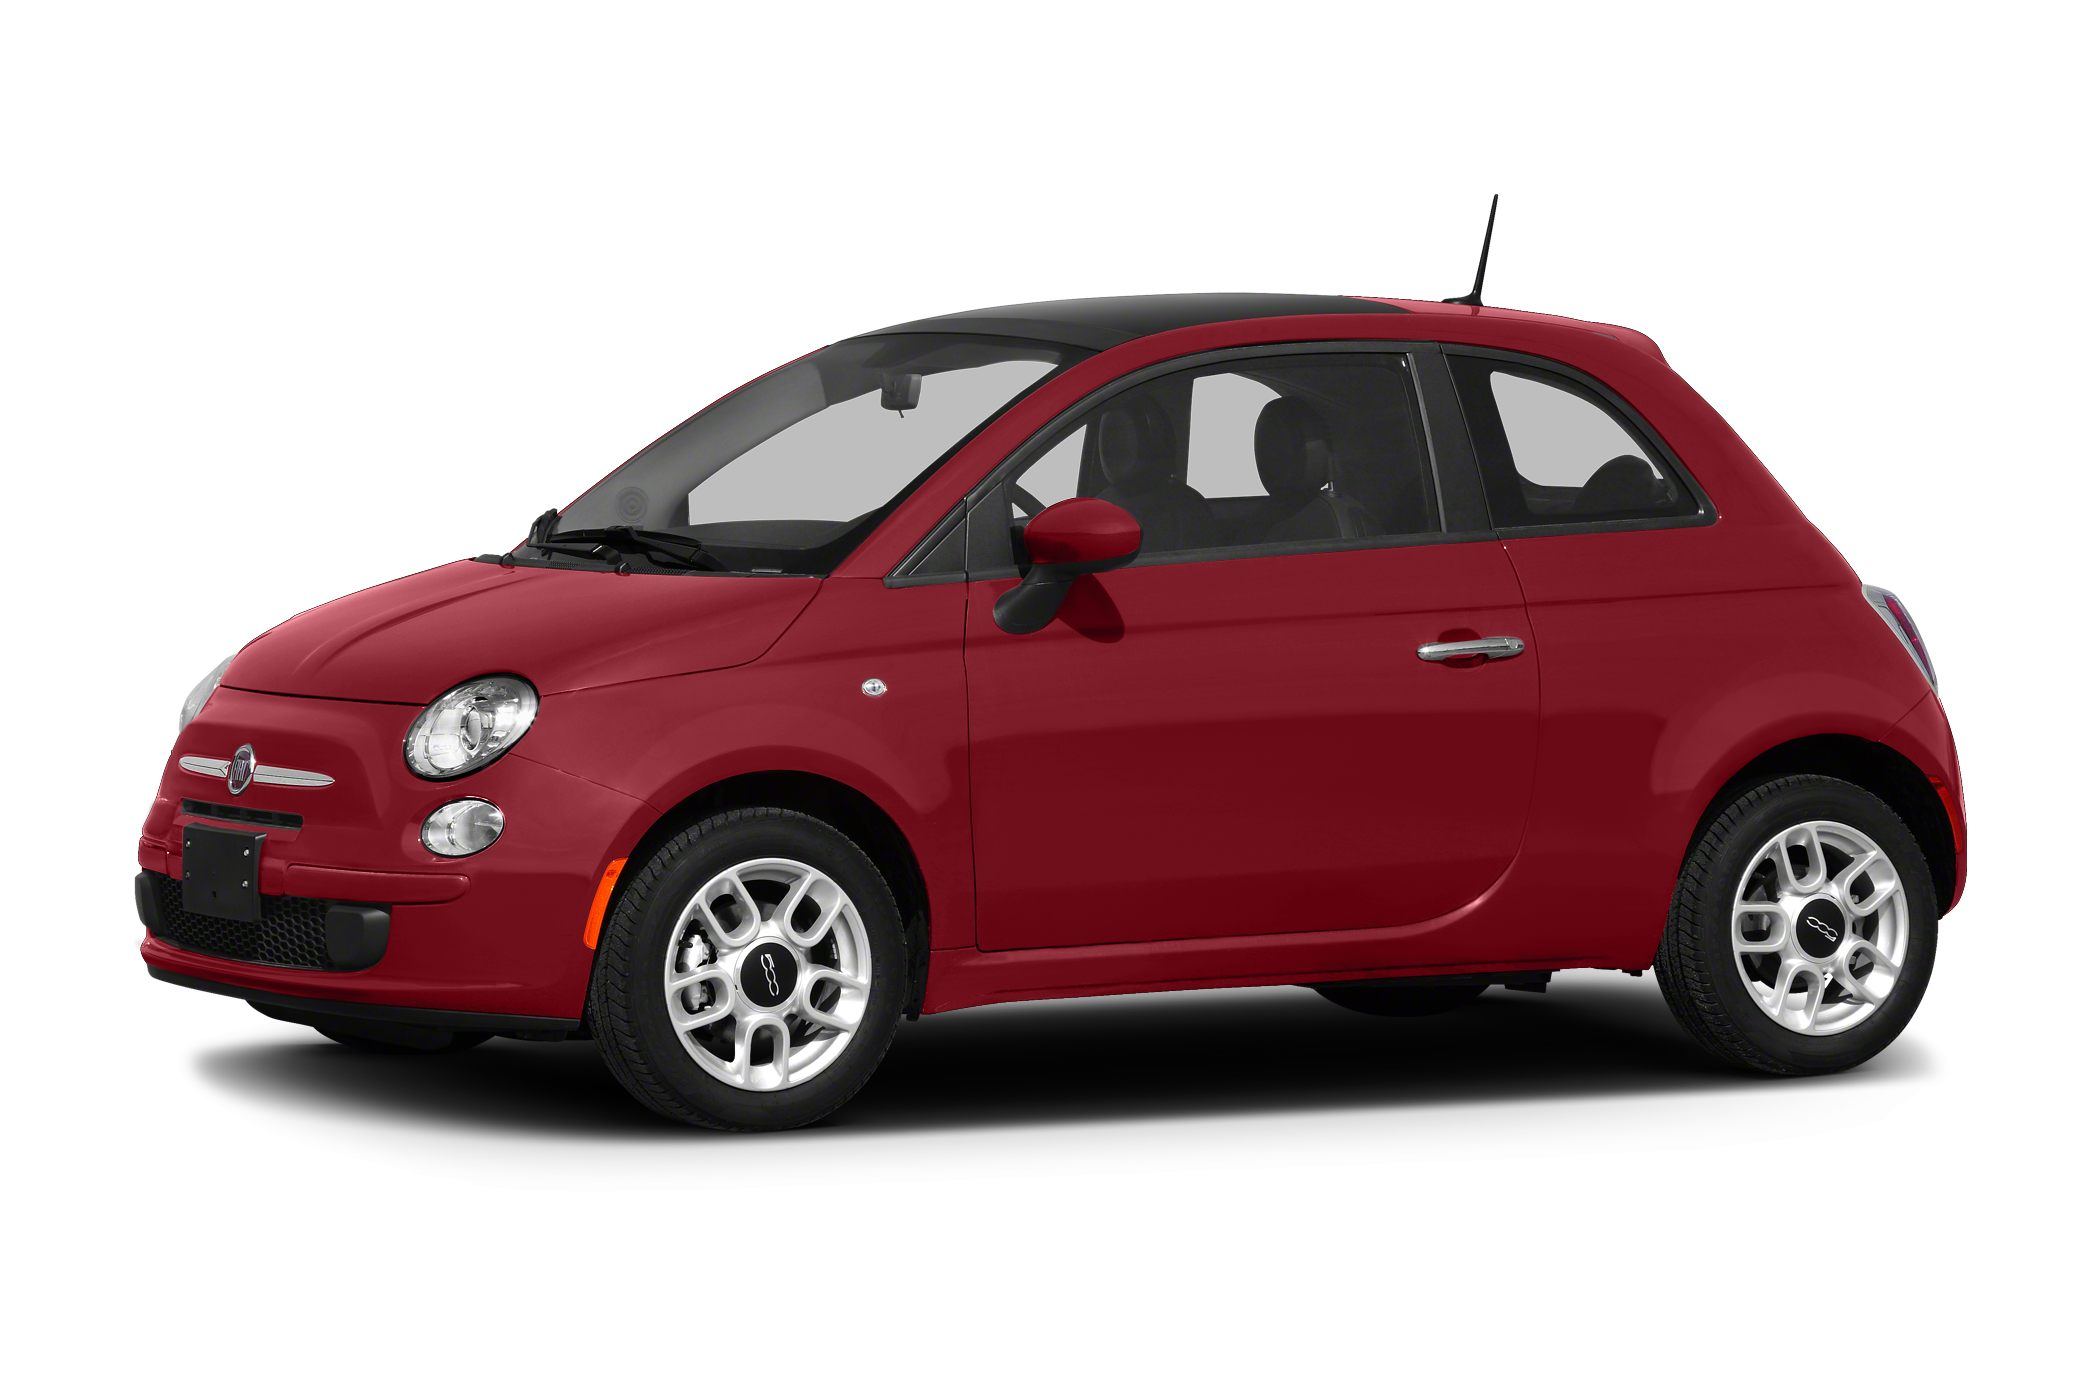 2013 fiat 500 pop for sale vin 3c3cffarxdt